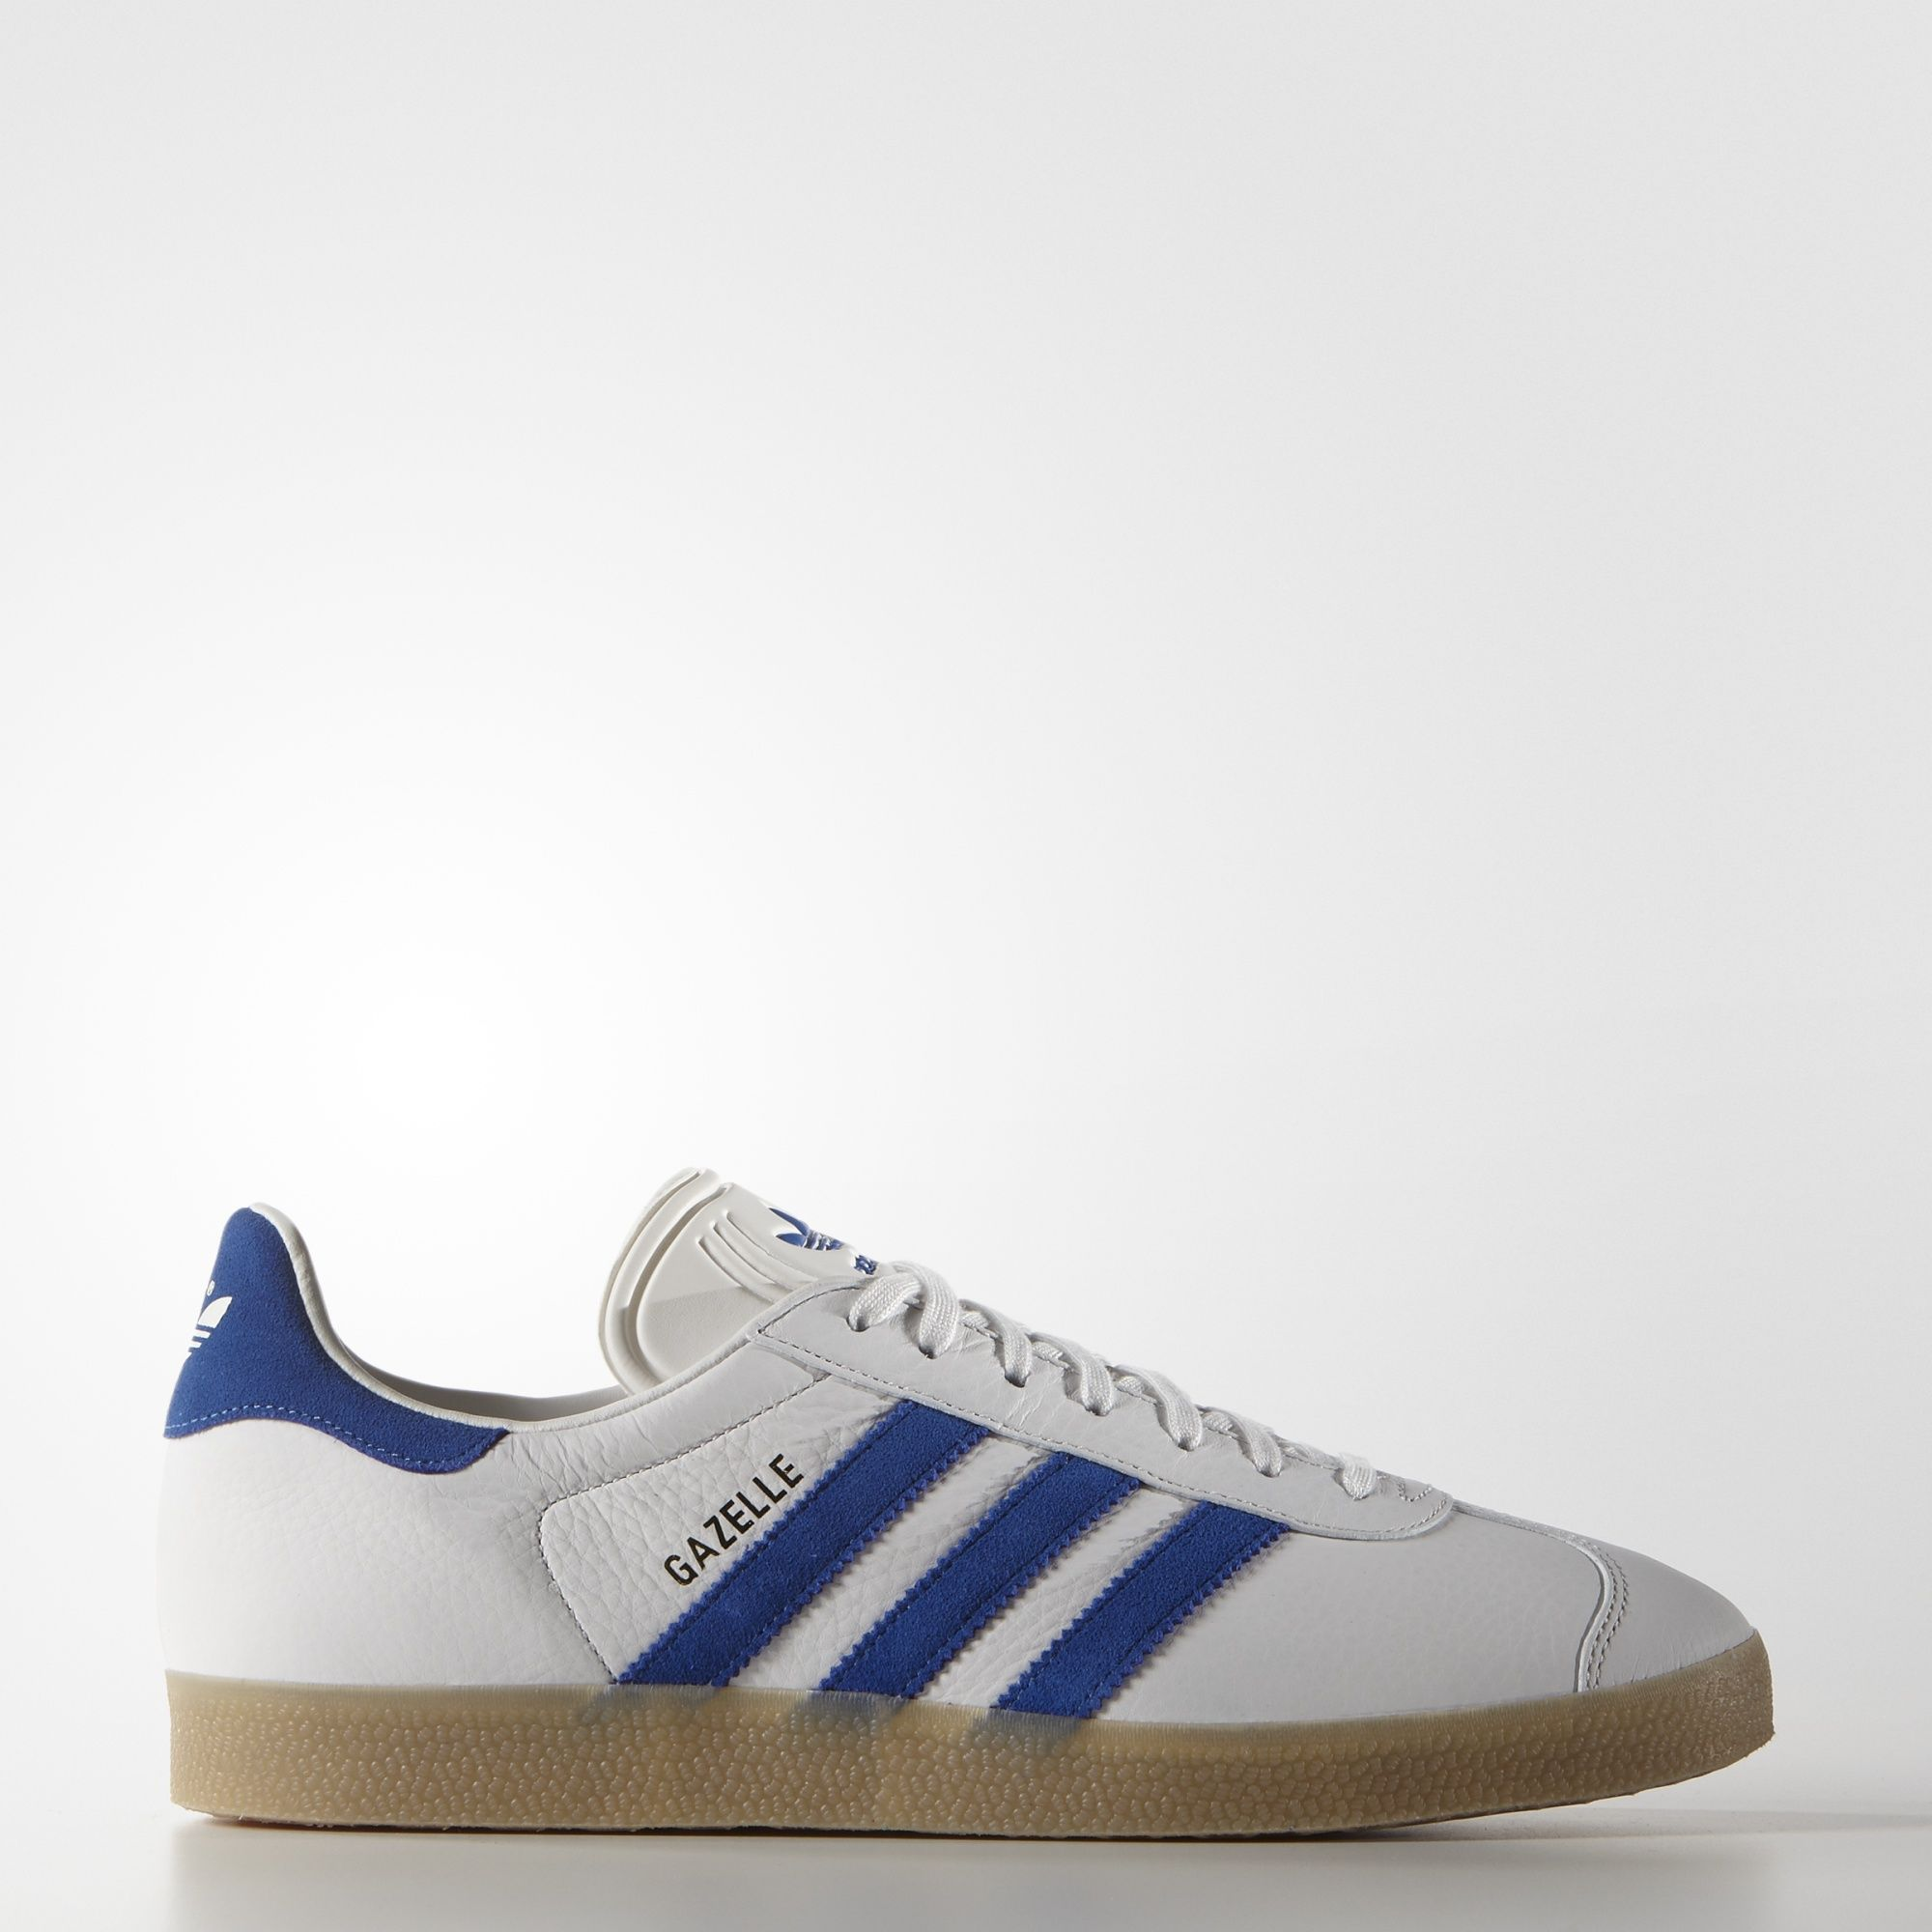 adidas gazelle red kids adidas shoes men nmdxri